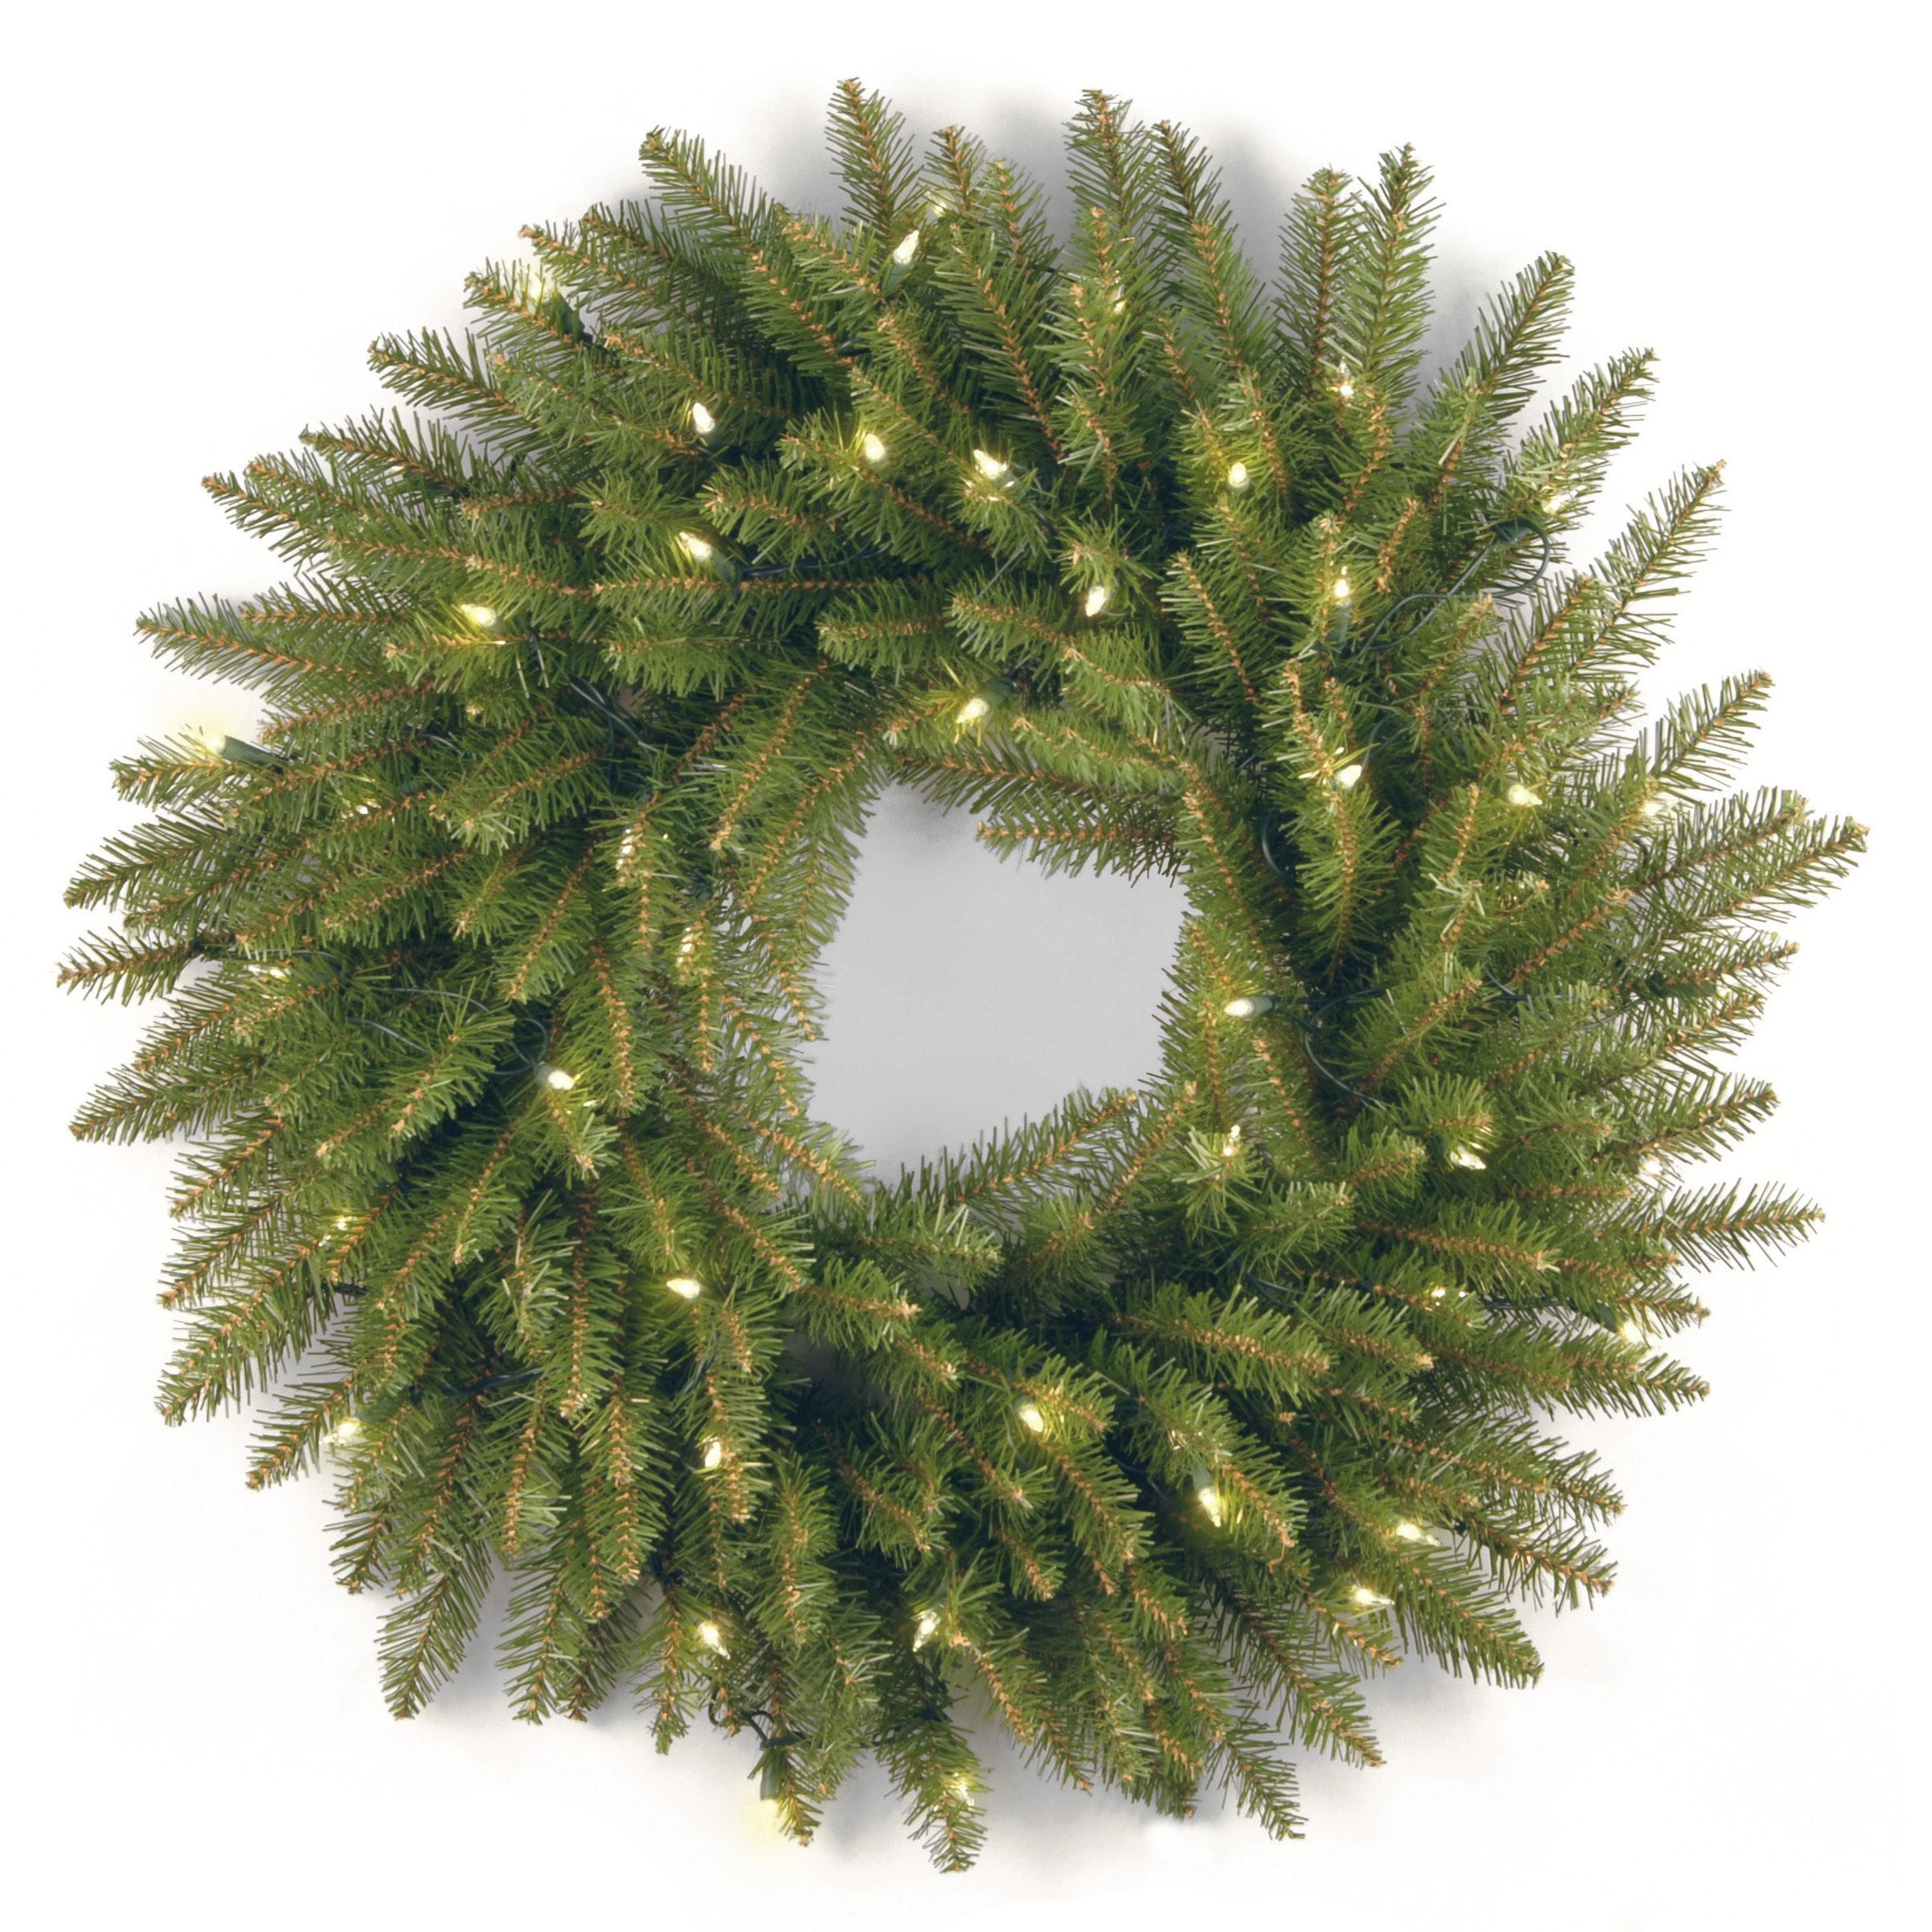 National Tree Company 16 Inch Frosted Berry Grapevine Wreath Outdoor Christmas Wreaths Artificial